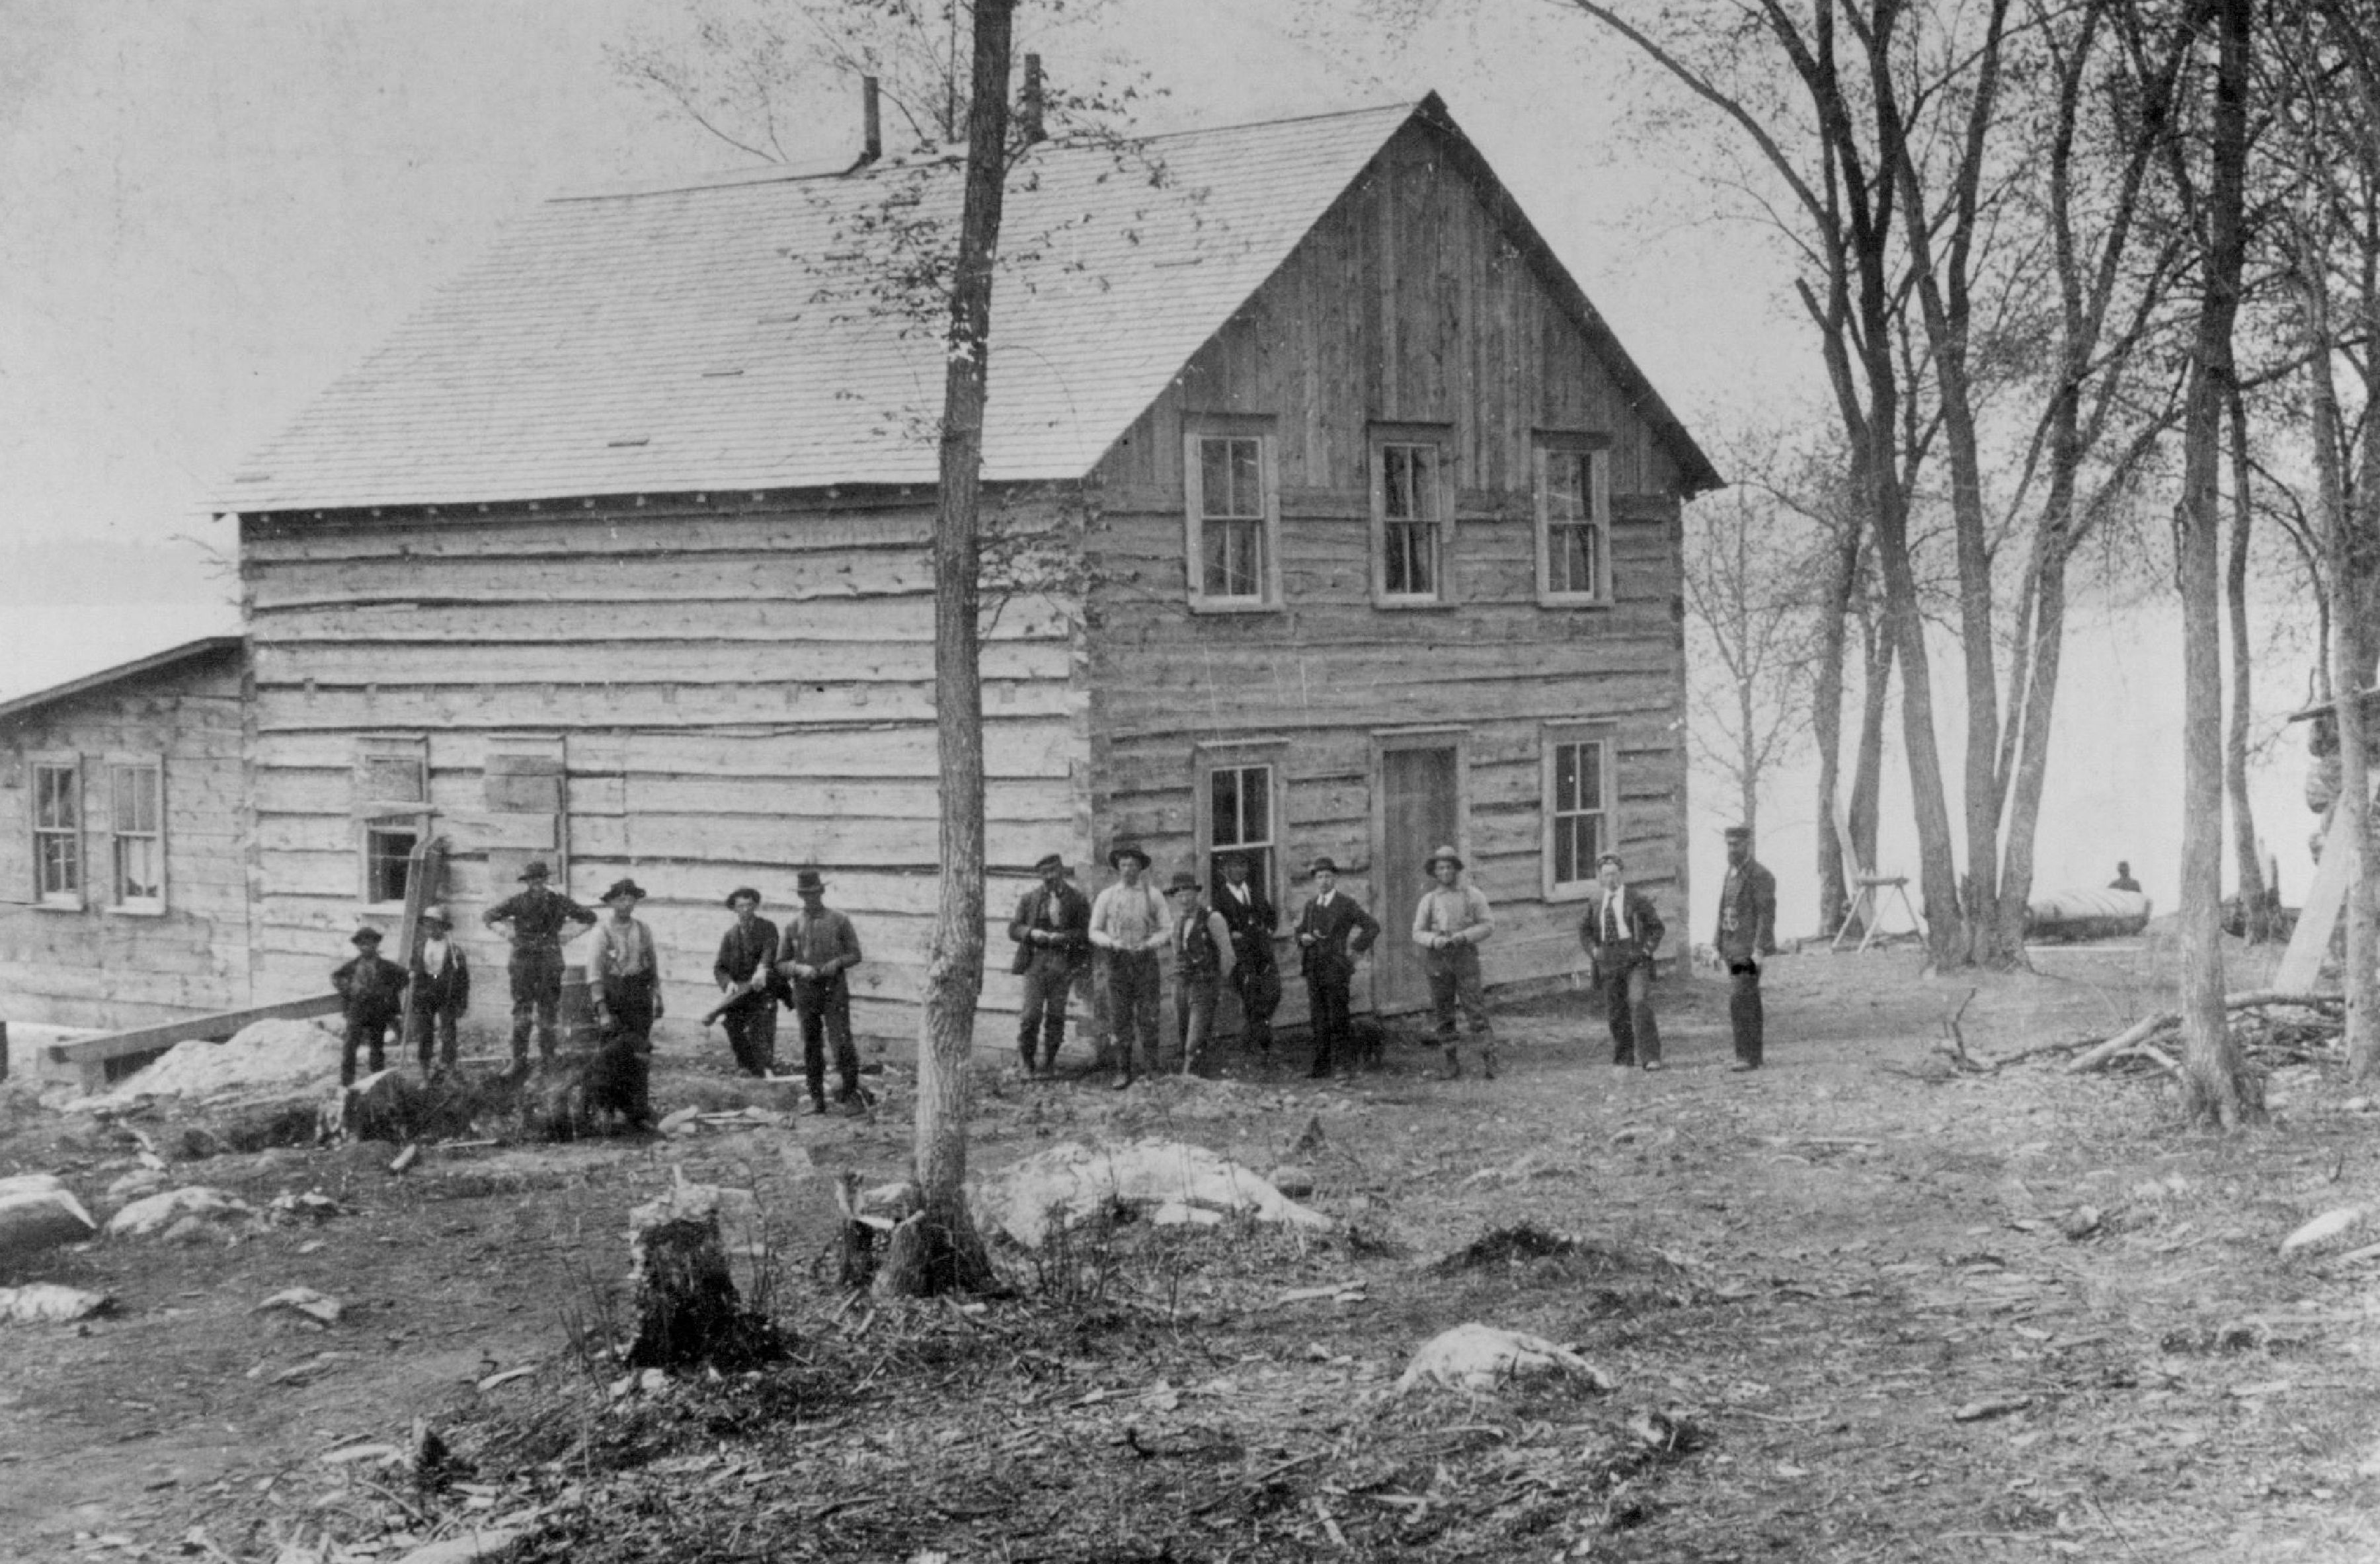 People stand outside the The Green Tree Hotel at Rainy Lake during the gold rush there in the late 1800s.